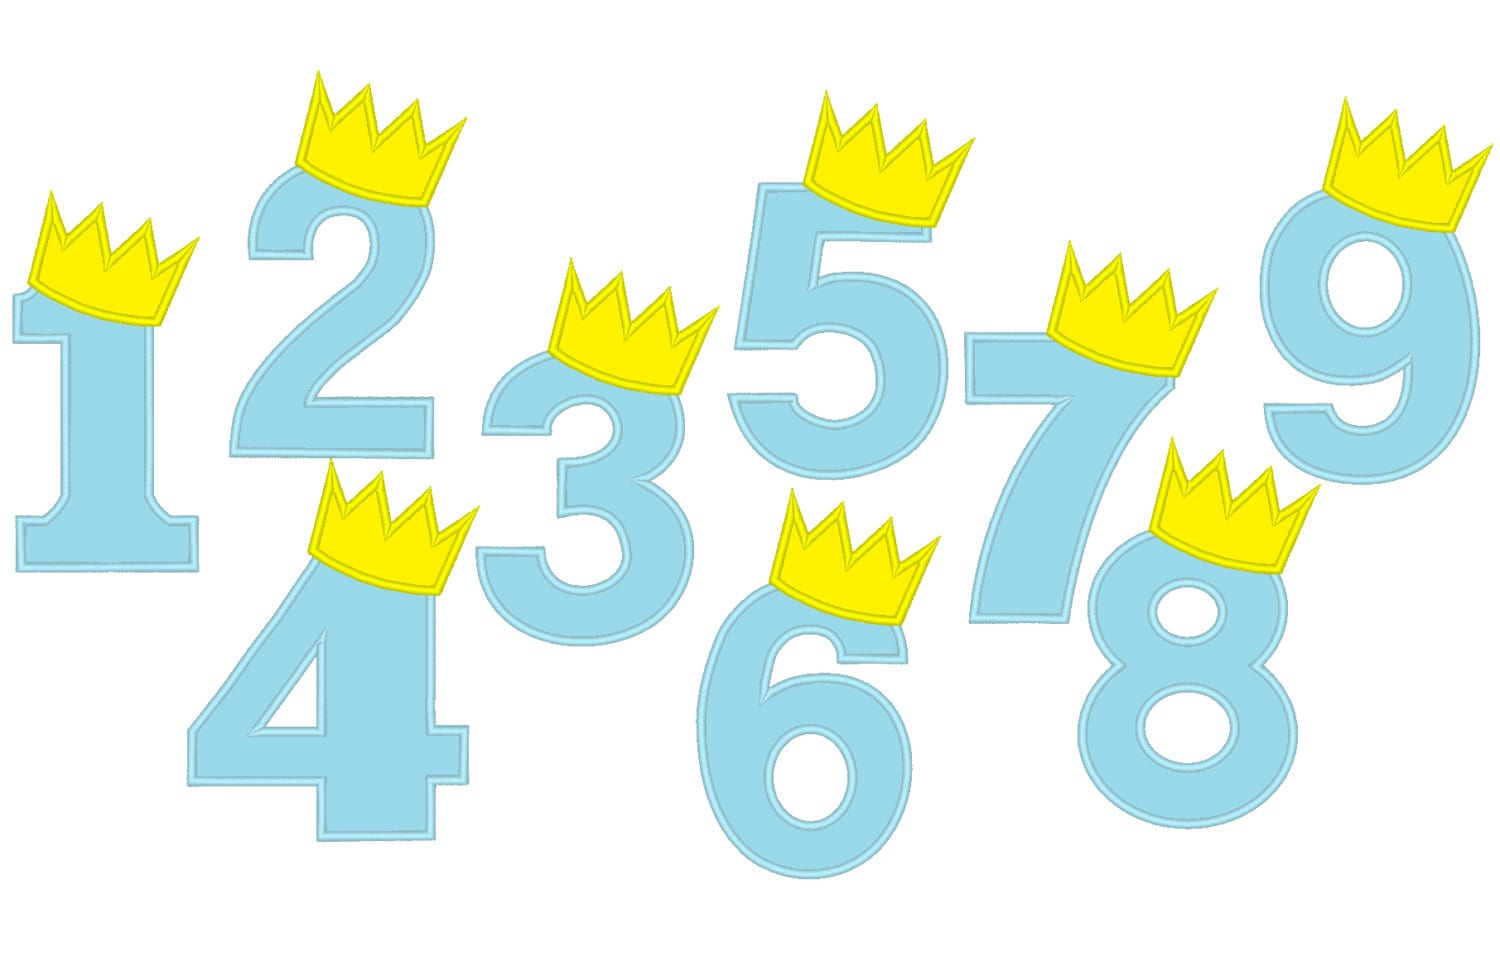 King birthday crown numbers embroidery applique designs for Embroidery office design version 9